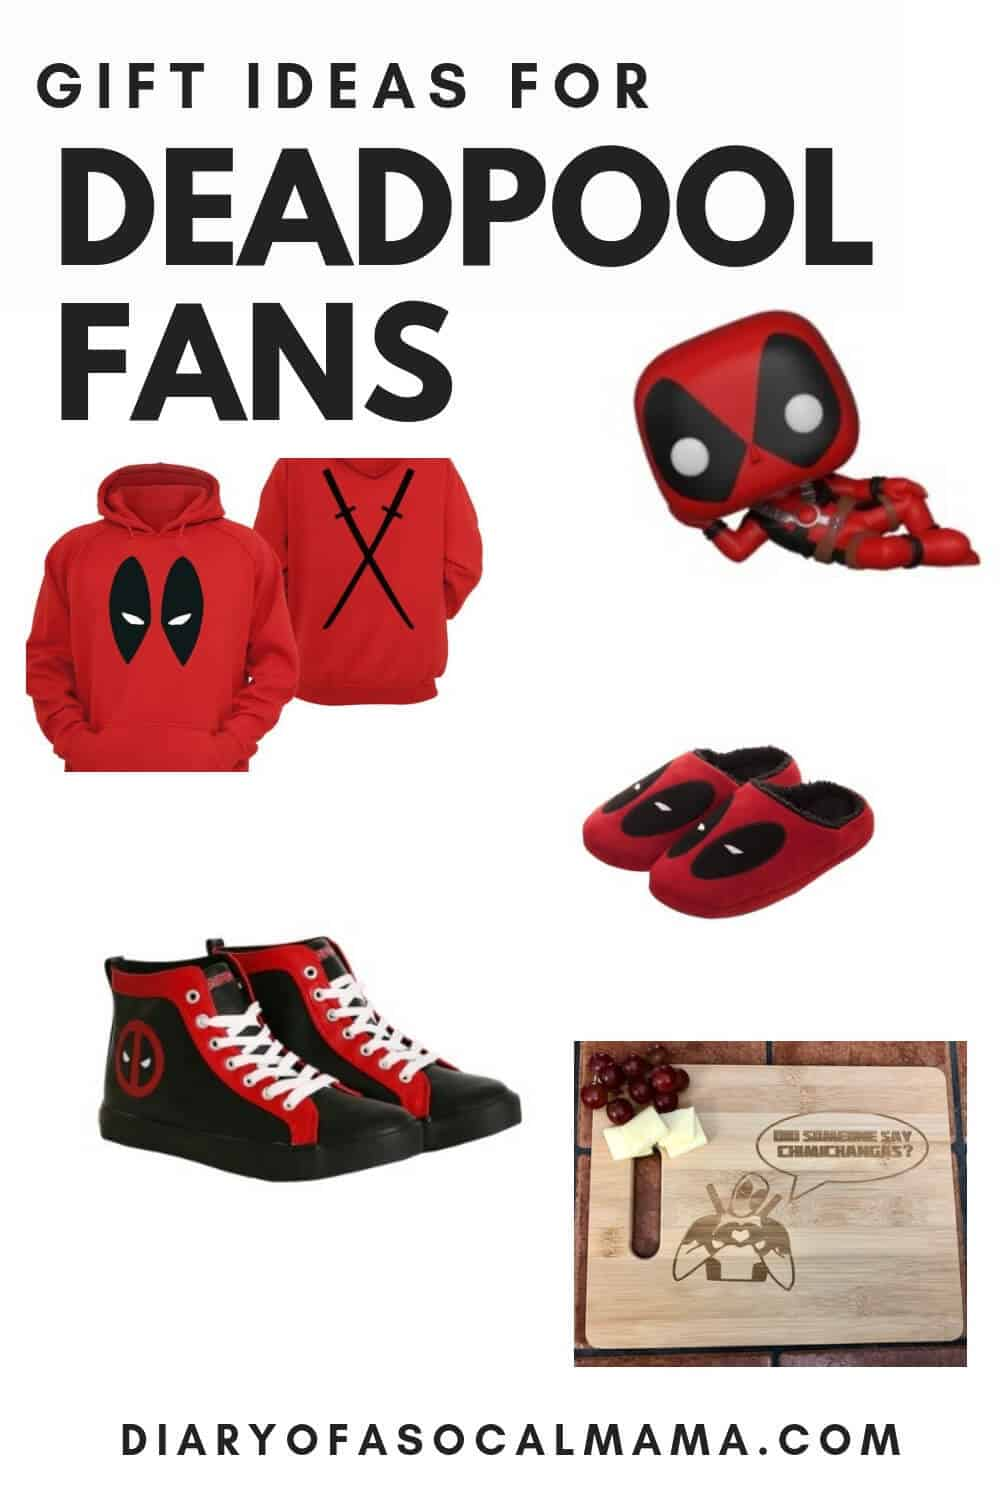 Deadpool fan gift ideas